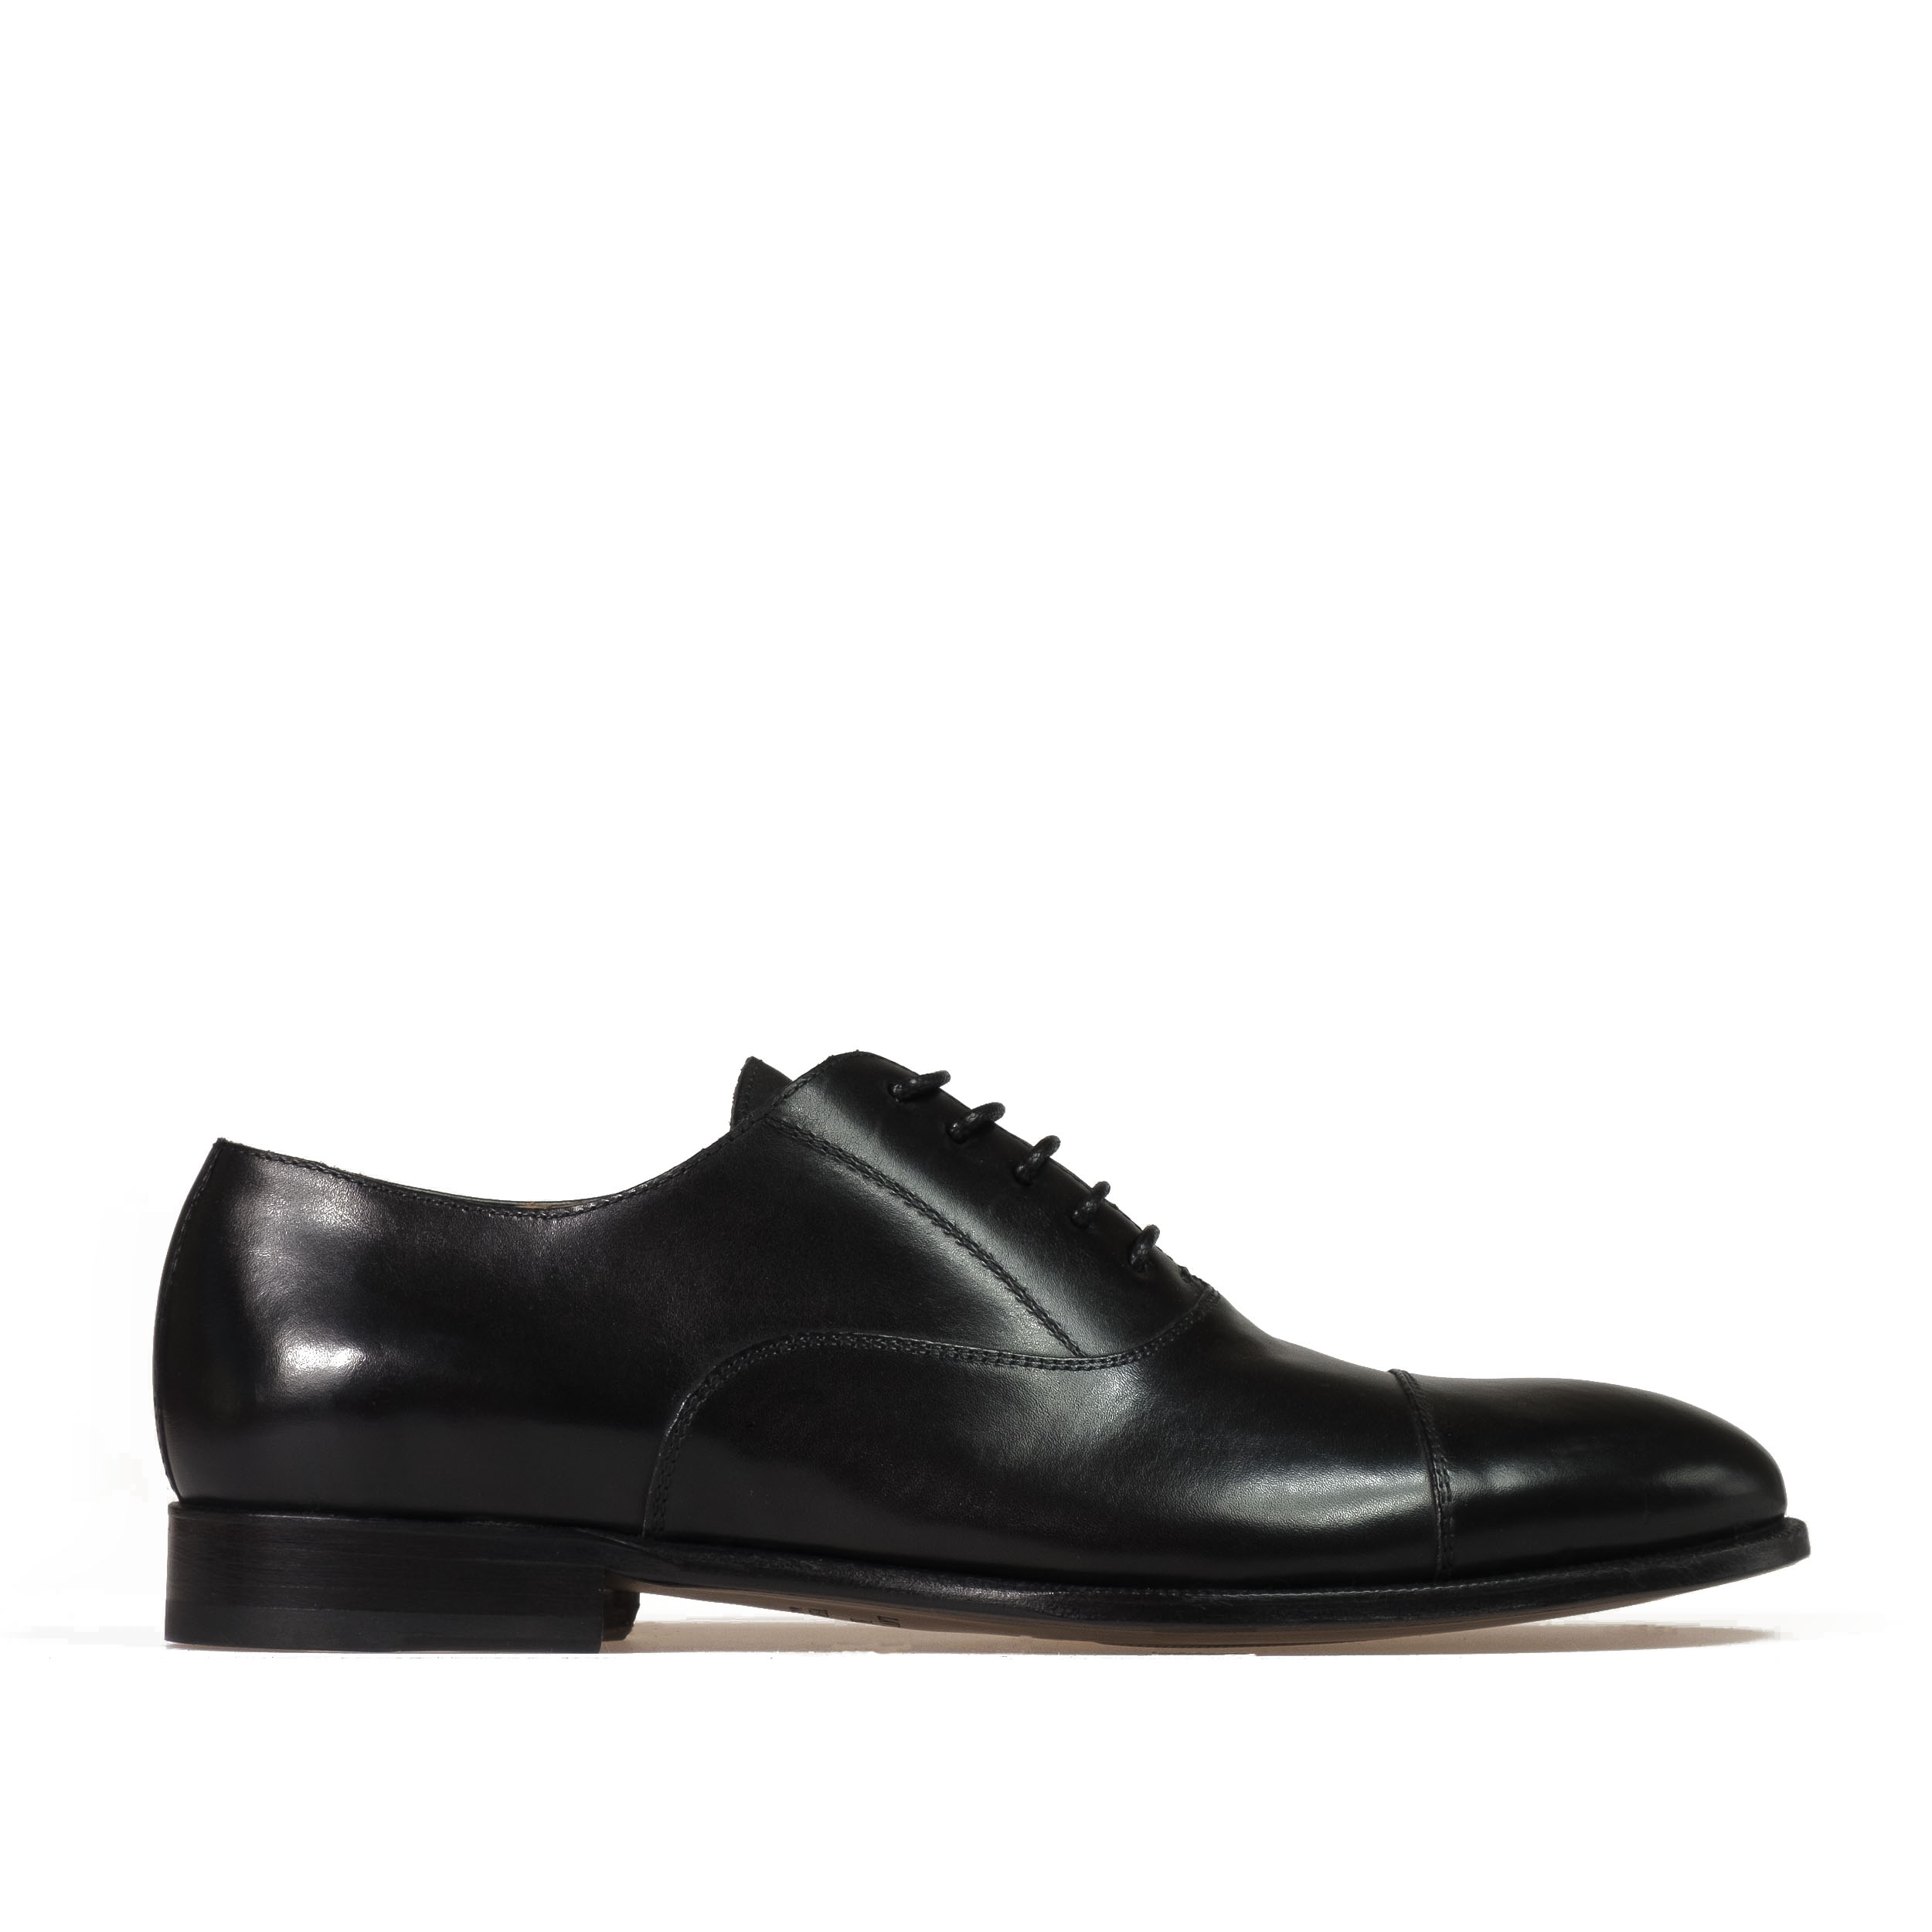 9450 oxford presidential black